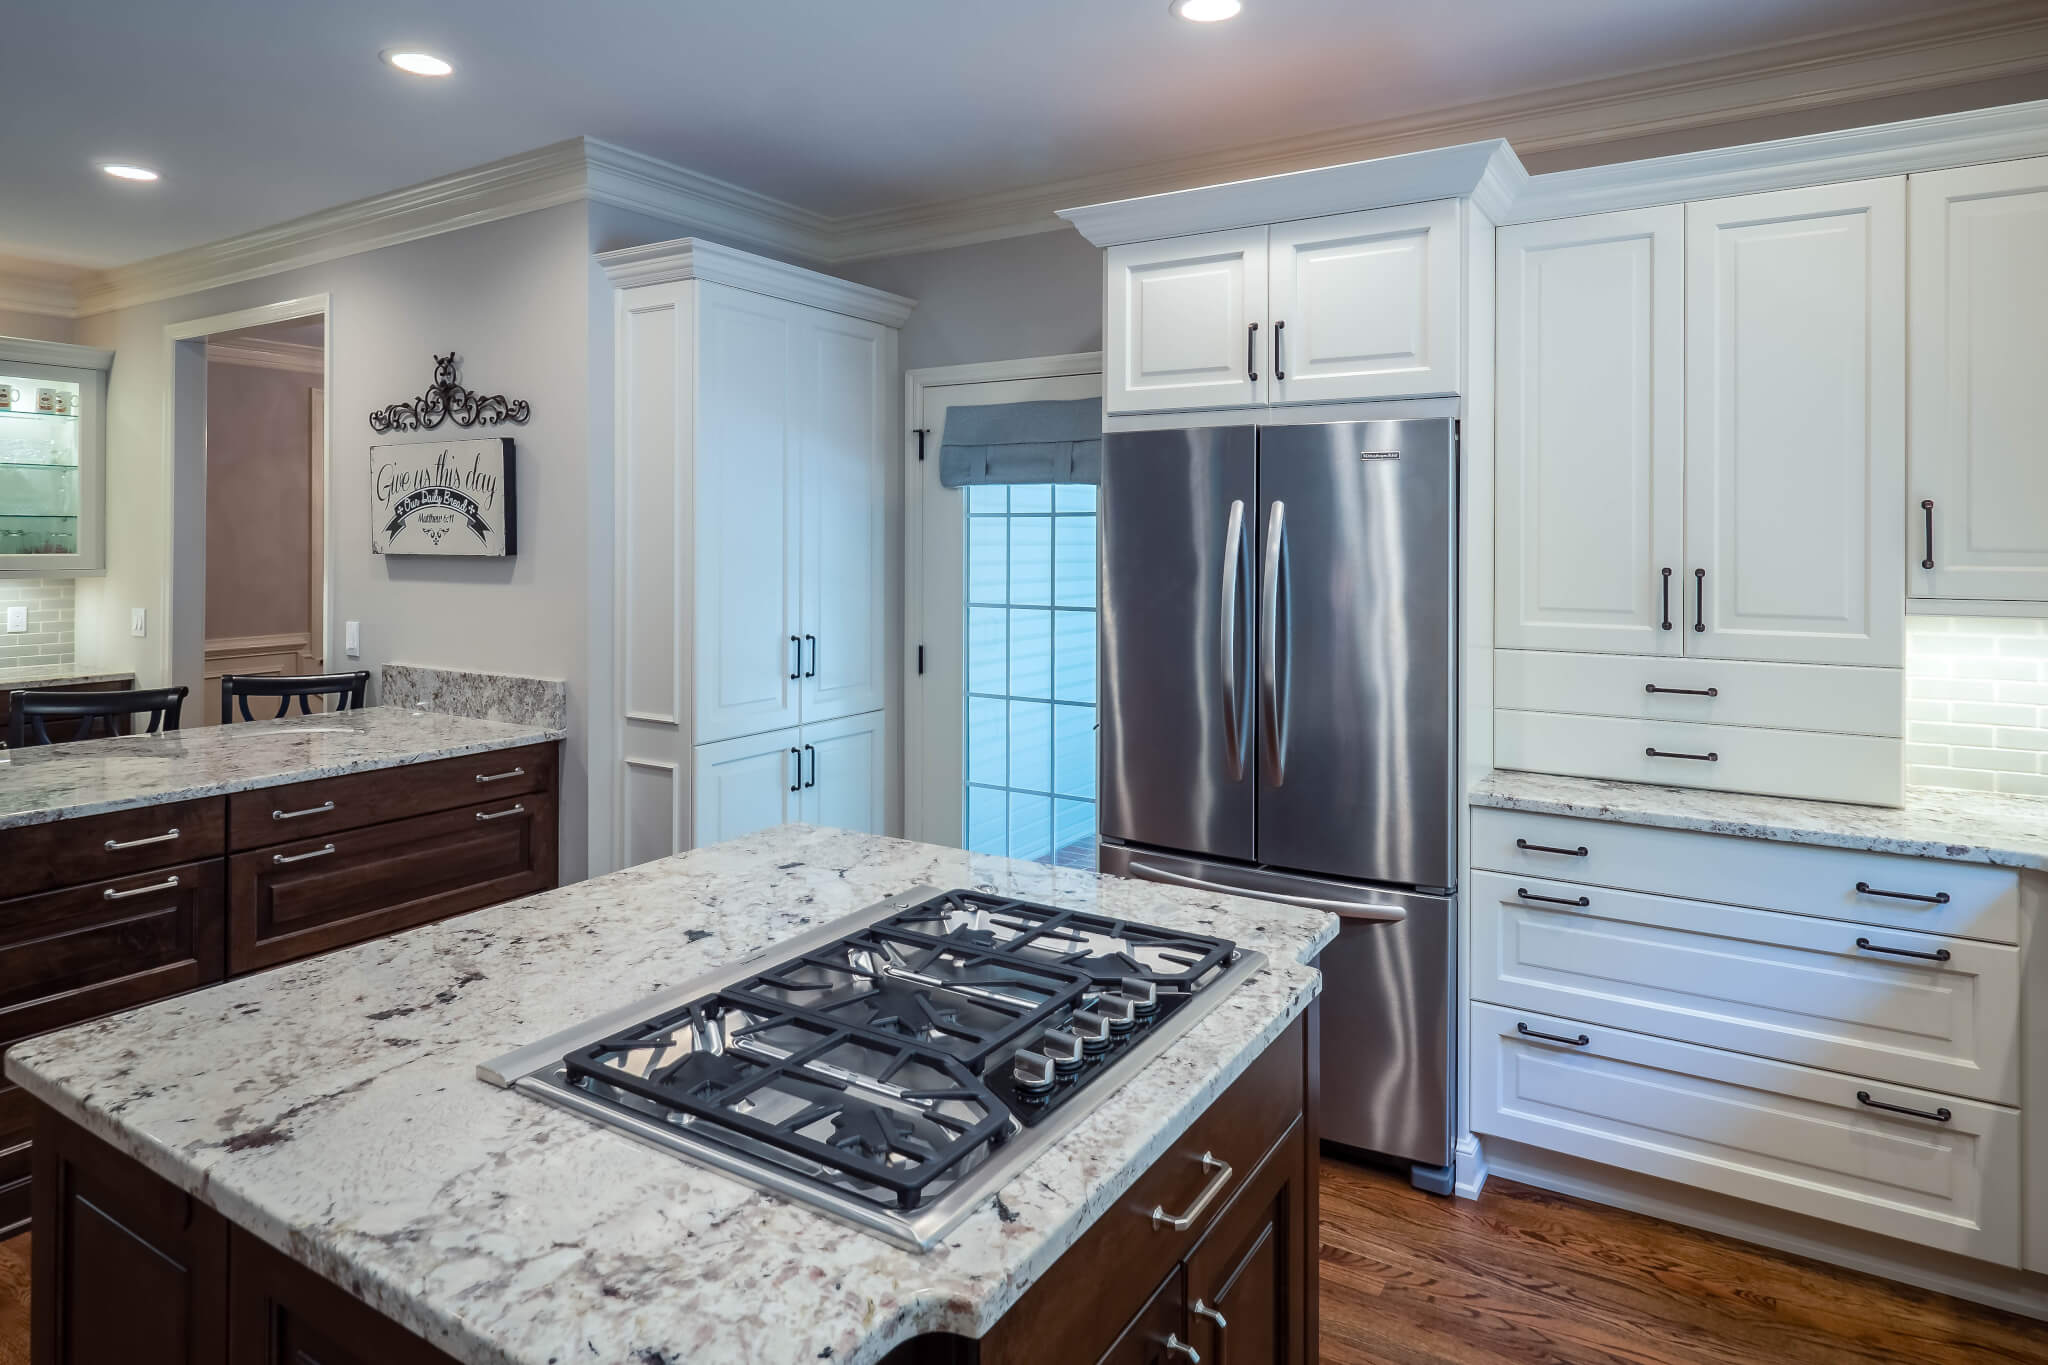 Traditional Kitchen with Double Island - Cheryl Pett Design